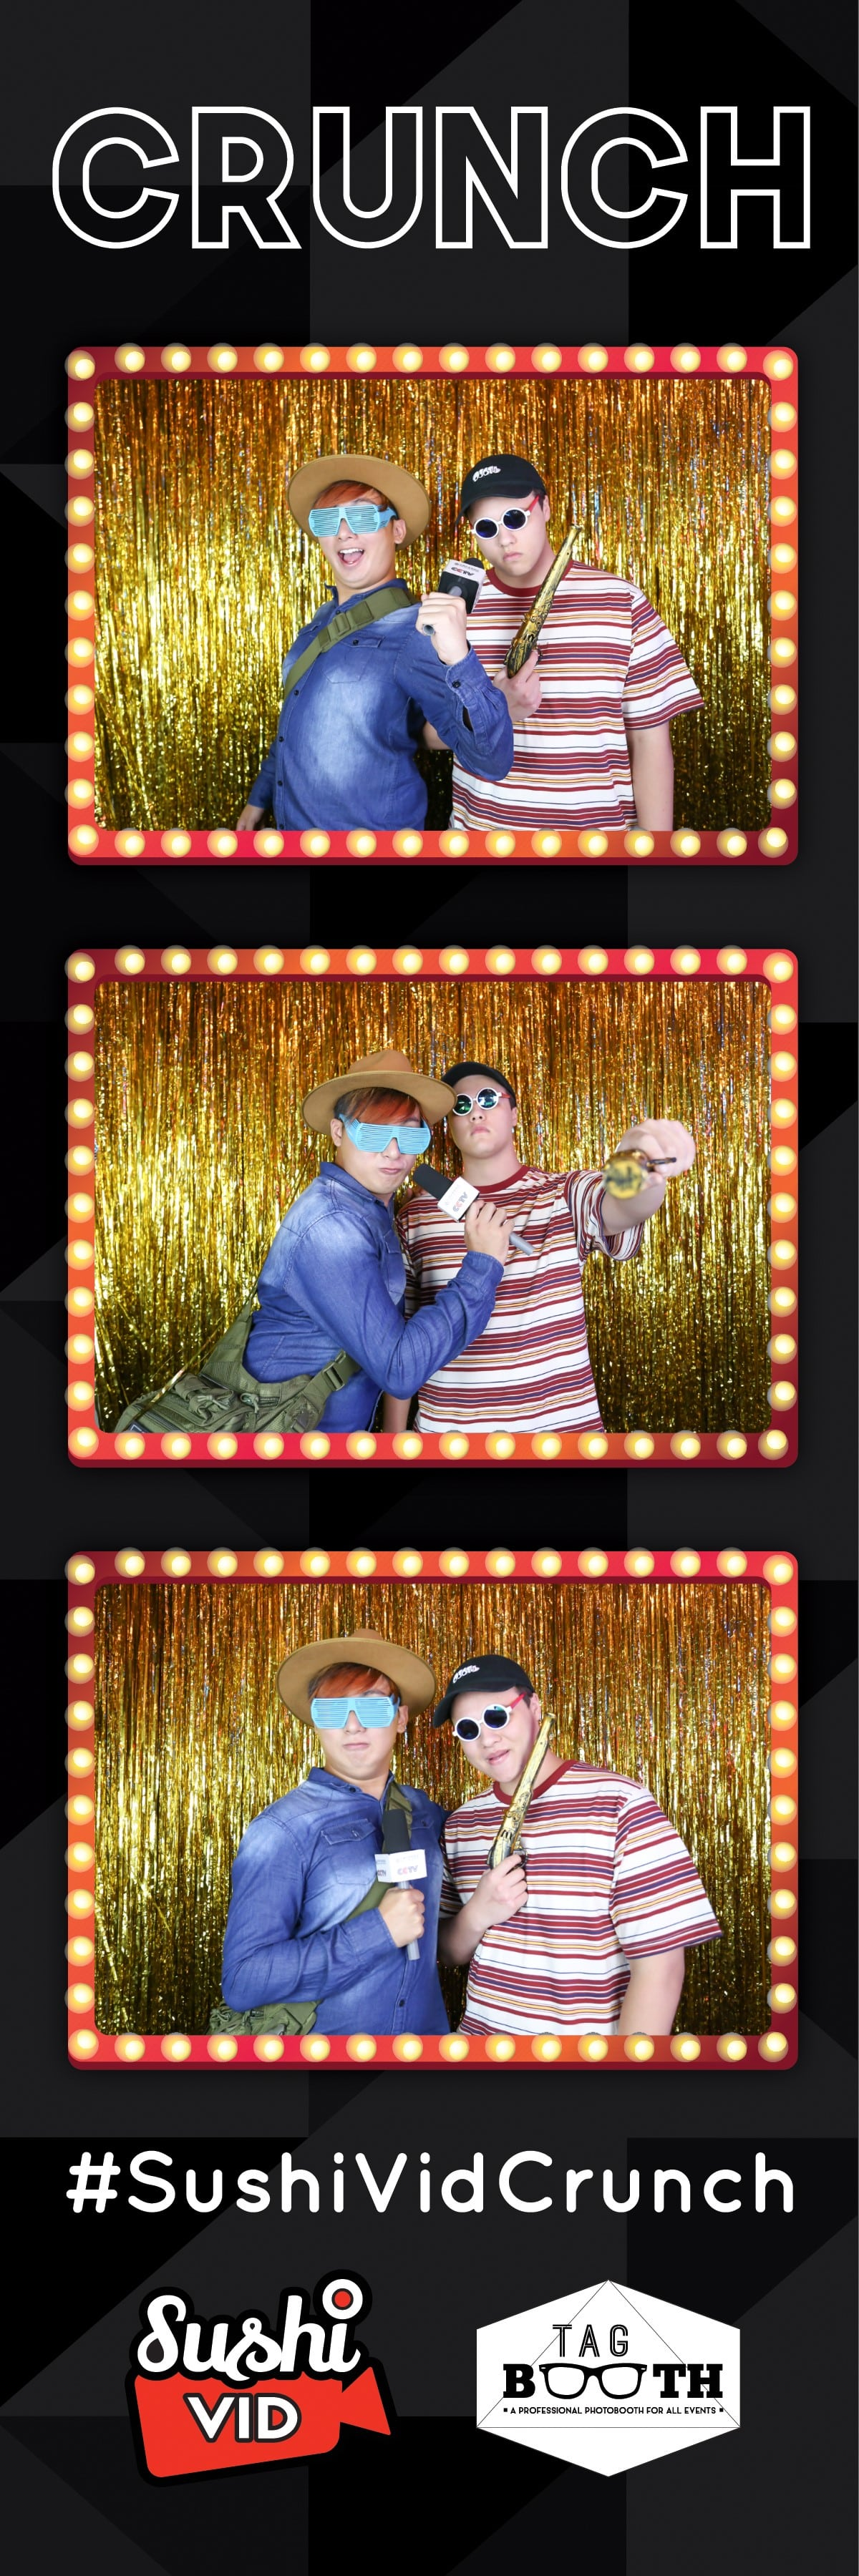 Sushivid+crunch+tagbooth1+22